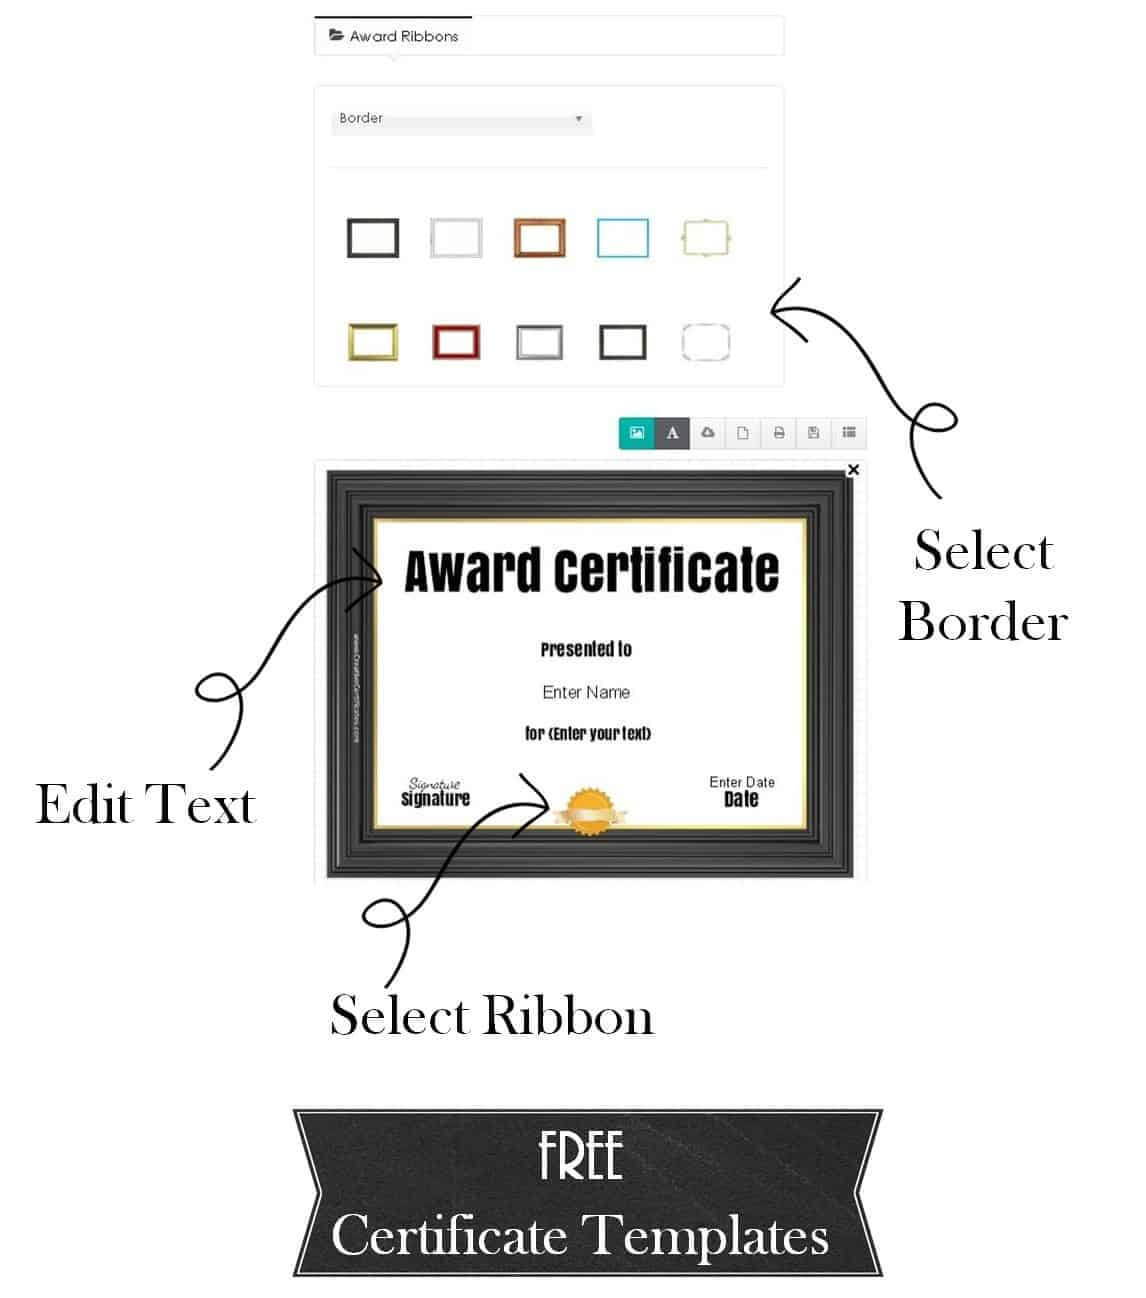 Free Custom Certificate Templates | Instant Download Pertaining To Ordination Certificate Templates